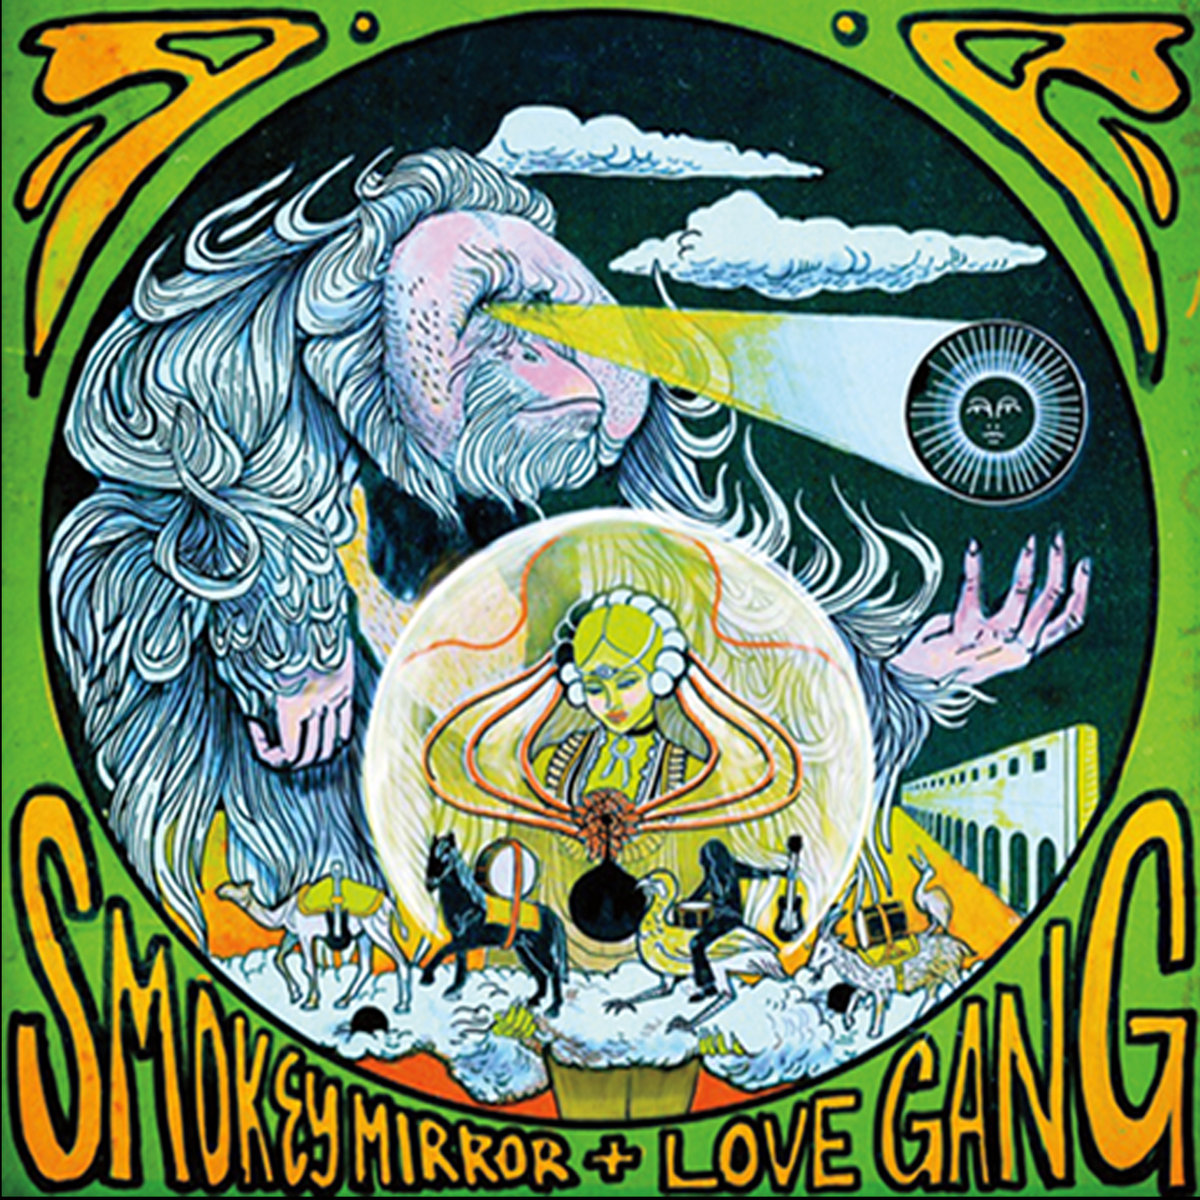 smokey mirror love gang split double ep